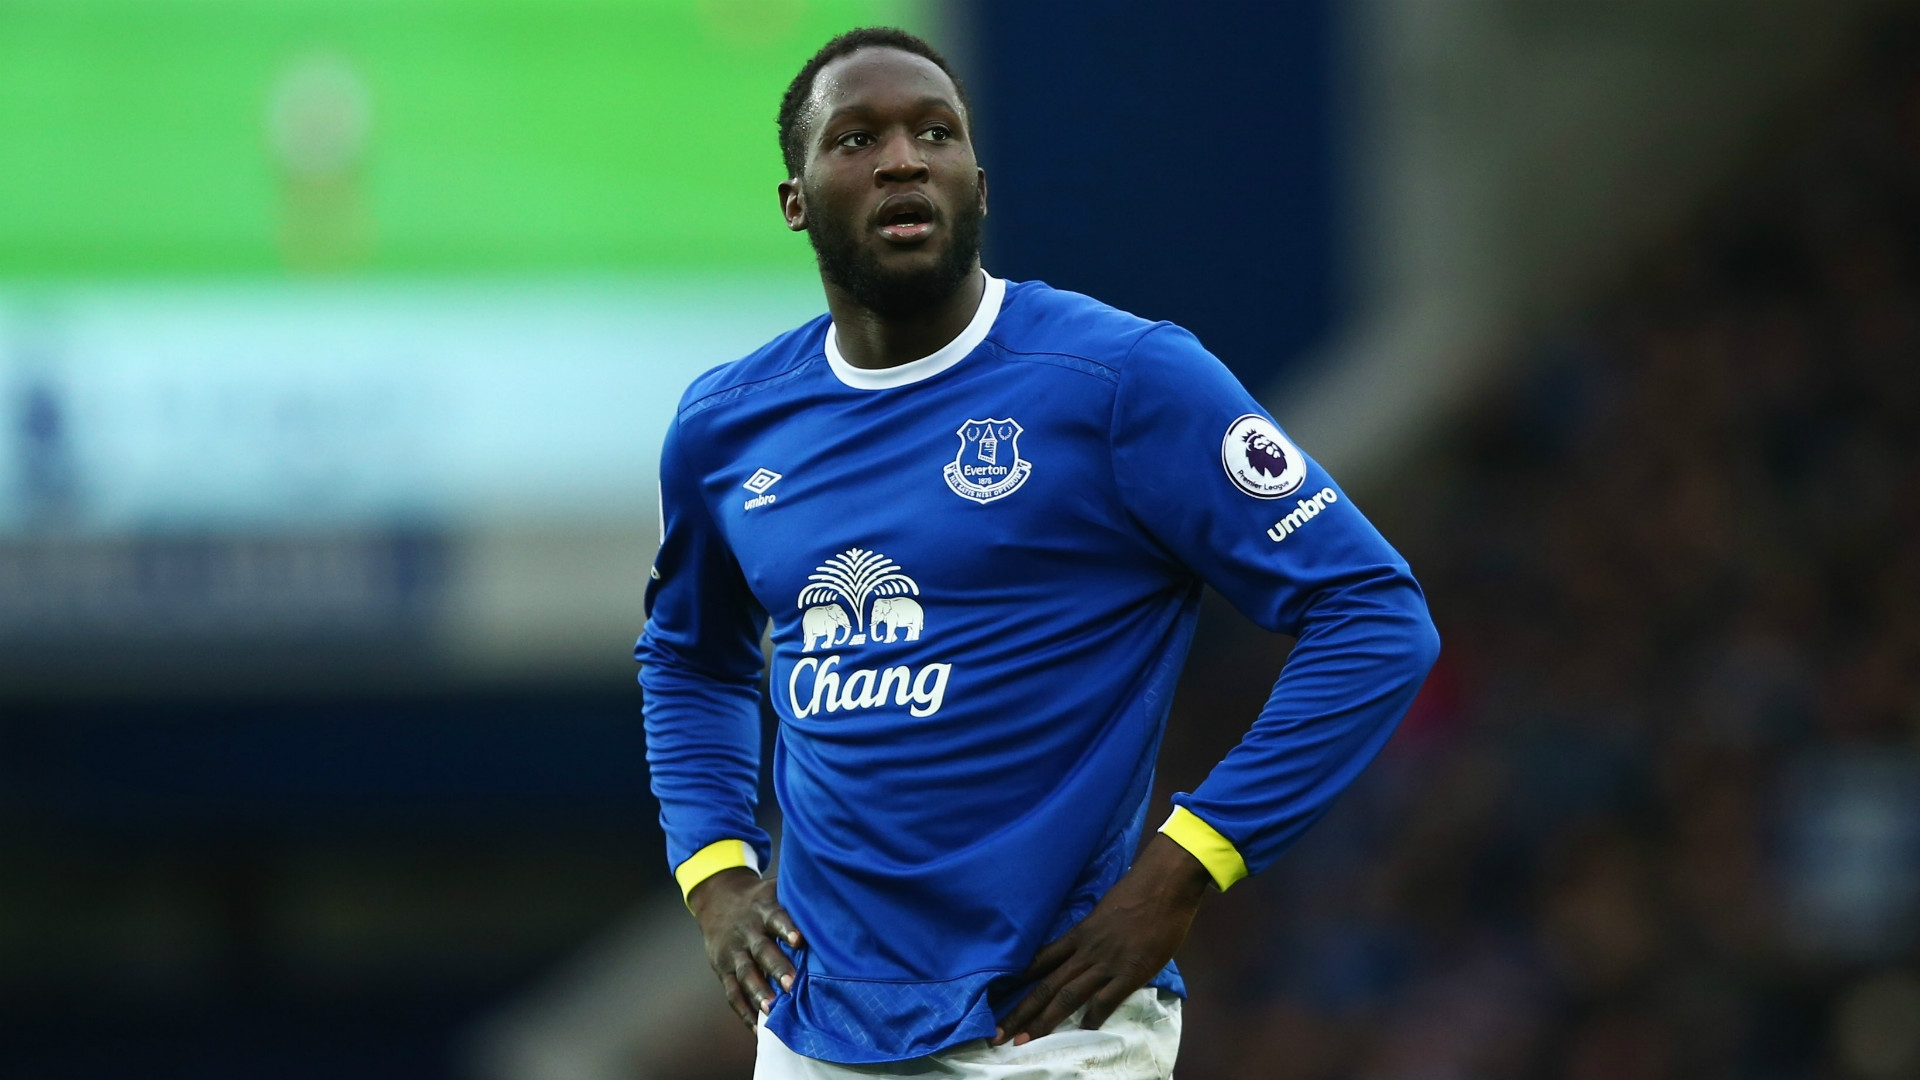 Lukaku ended the season as Premier League's second best goalscorer.